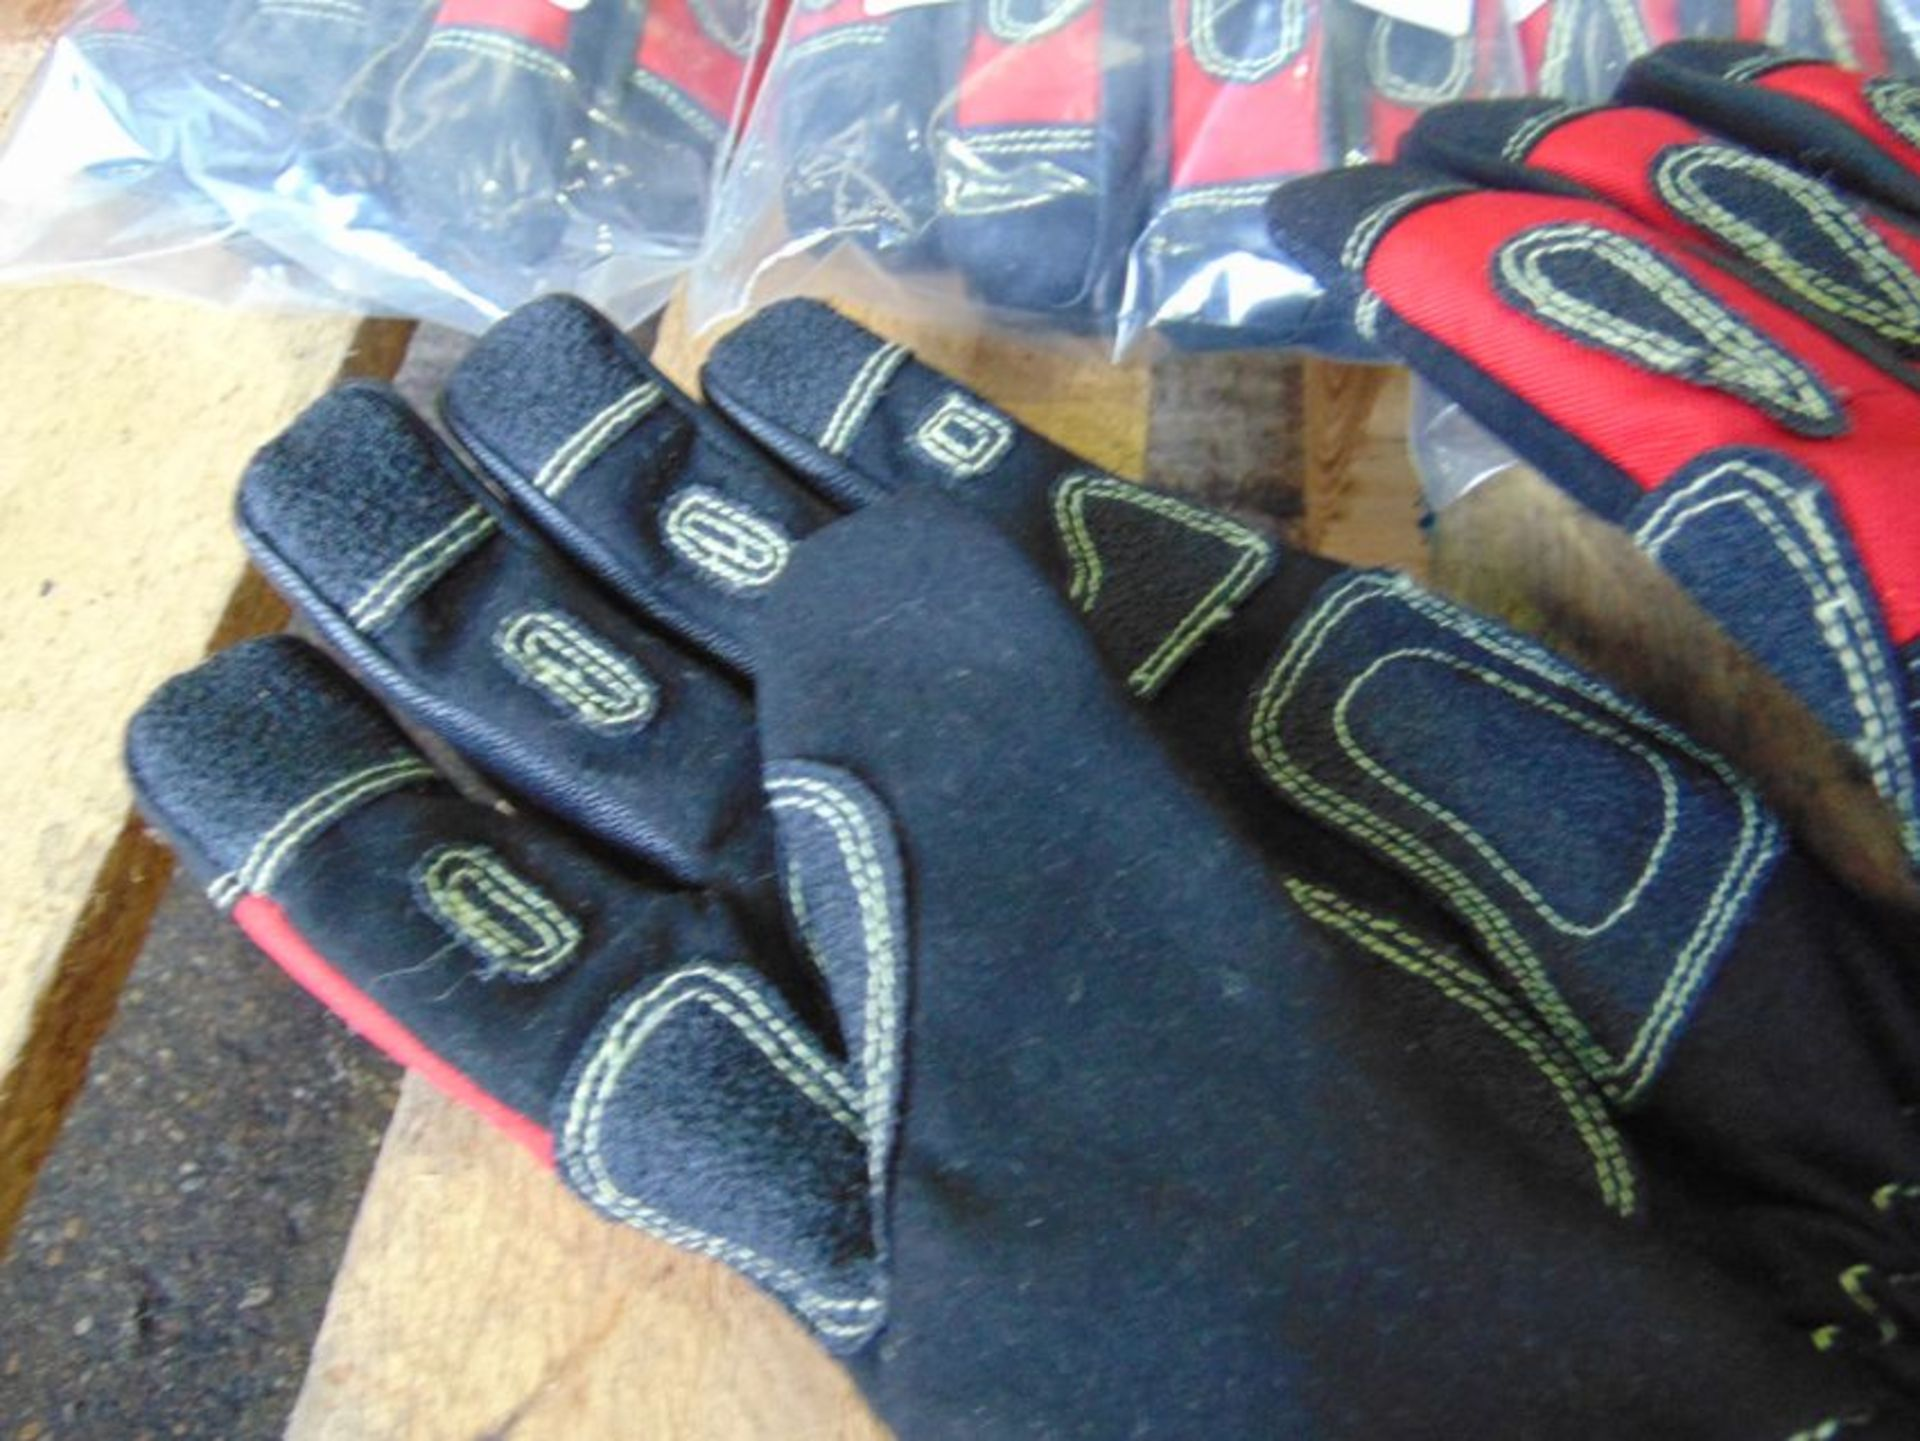 QTY 5 x Unissued M Bennett Extricator Plus RTC Gloves - Image 4 of 5